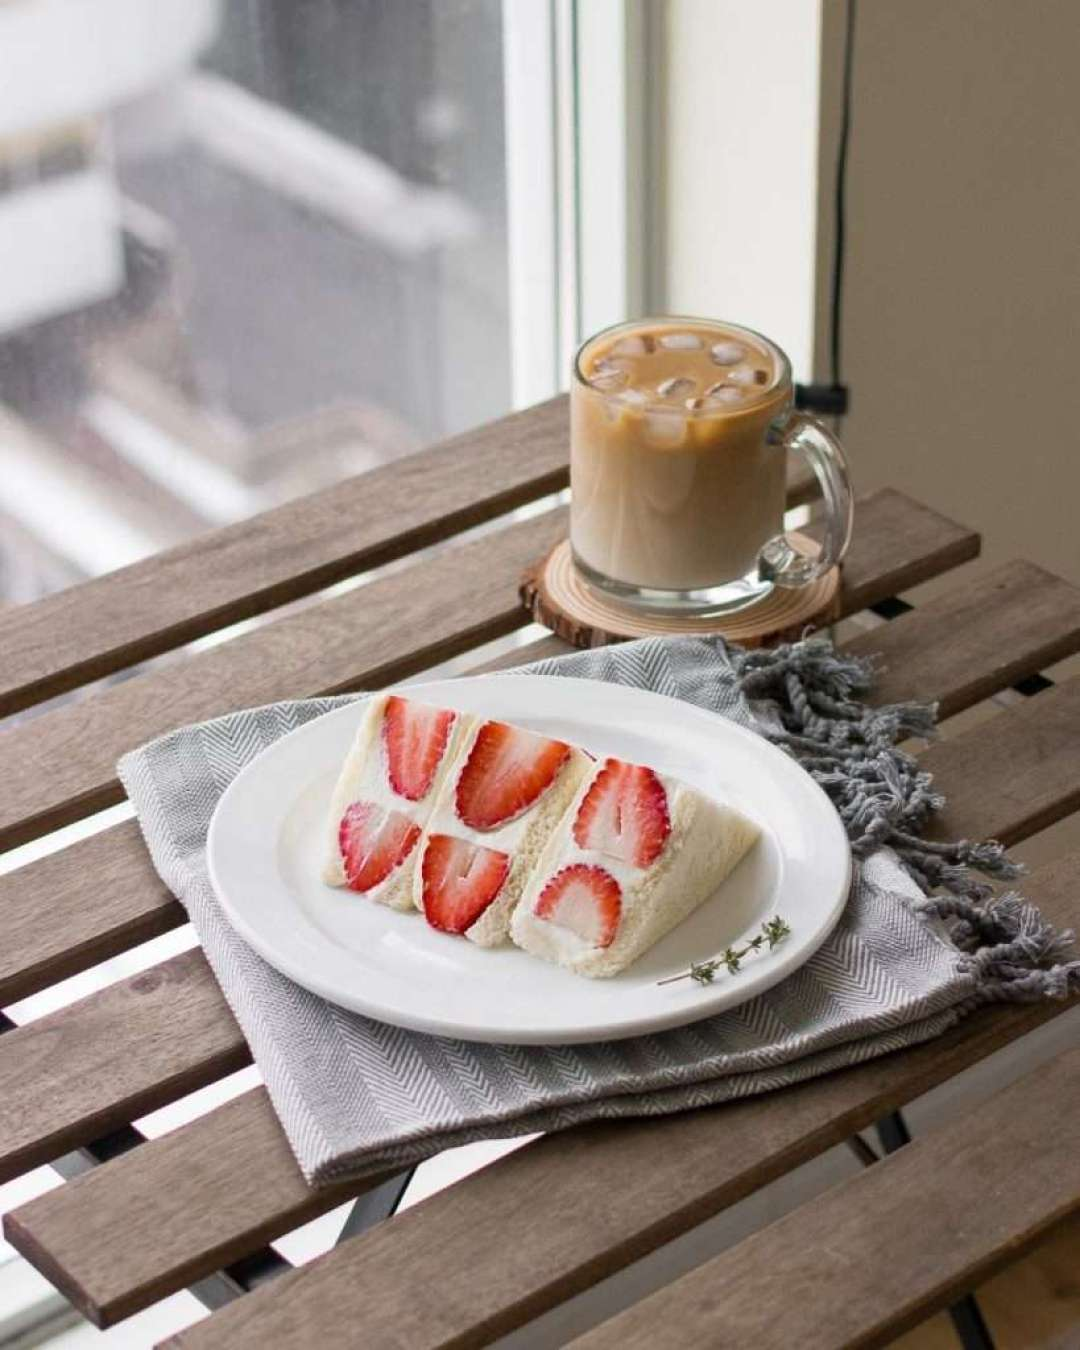 Strawberries and Cream Sandwich (Strawberry Sando)